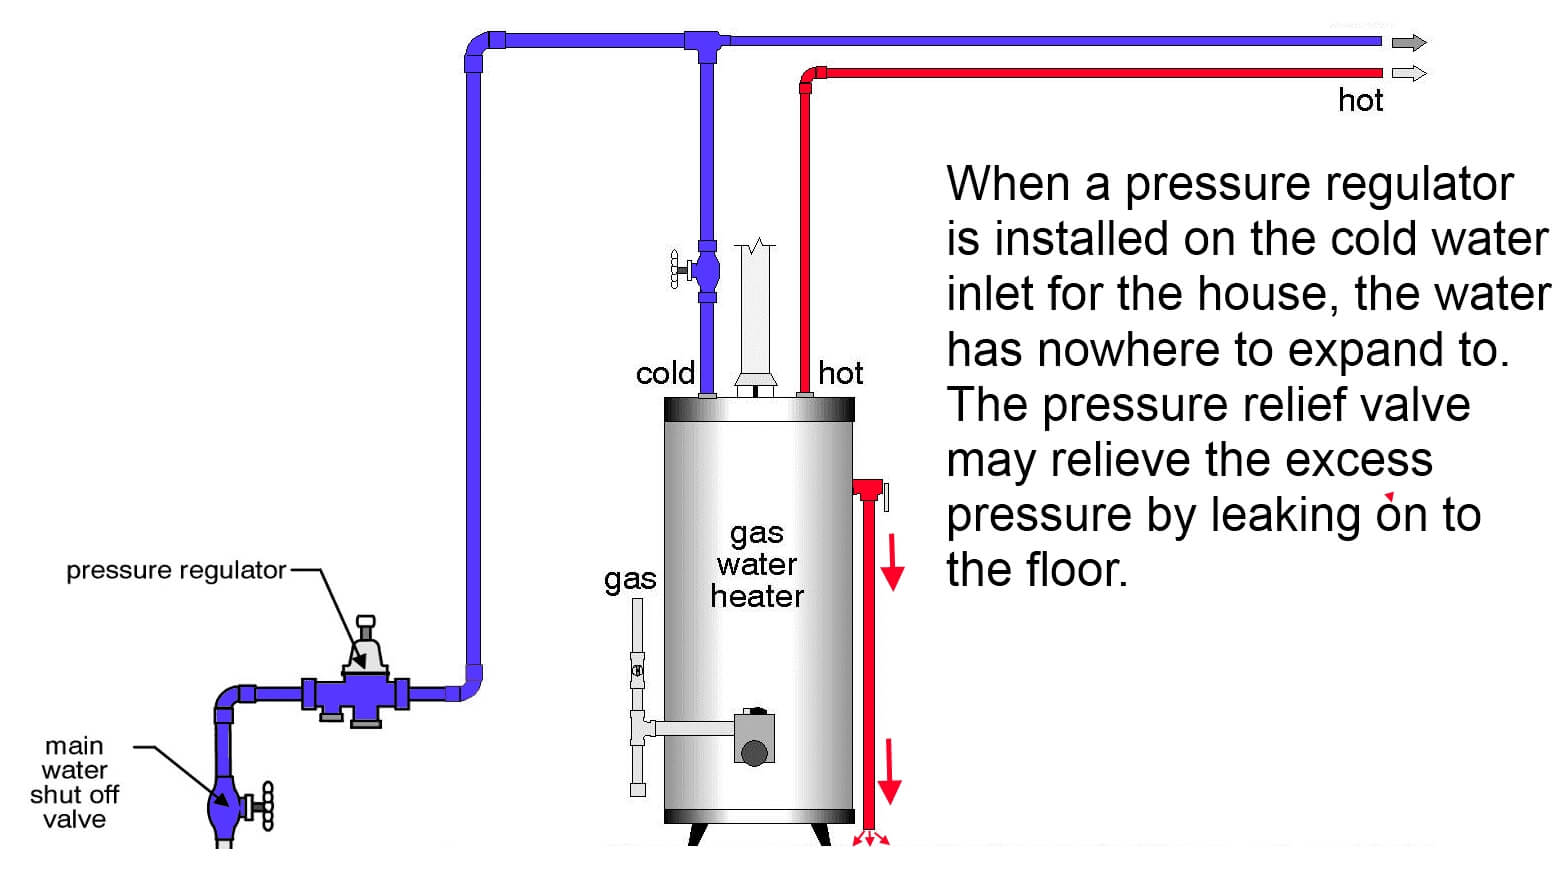 Why the relief valve at the water heater is leaking and what to do pressure regulator prevents expansion ccuart Image collections